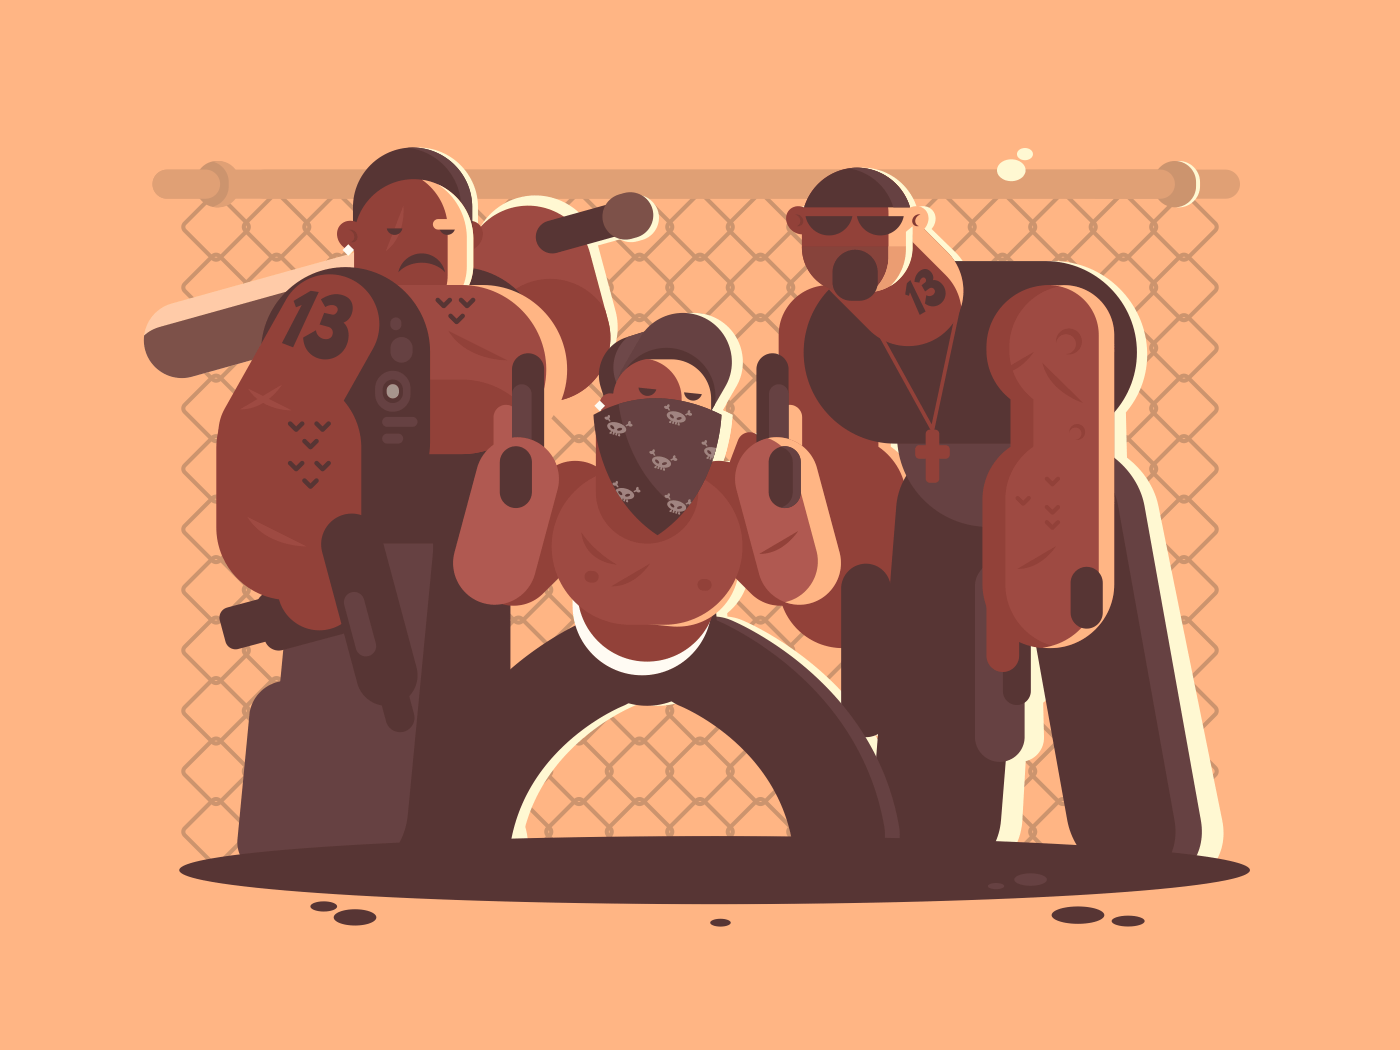 Criminal gang of men with weapons and bat. Vector illustration